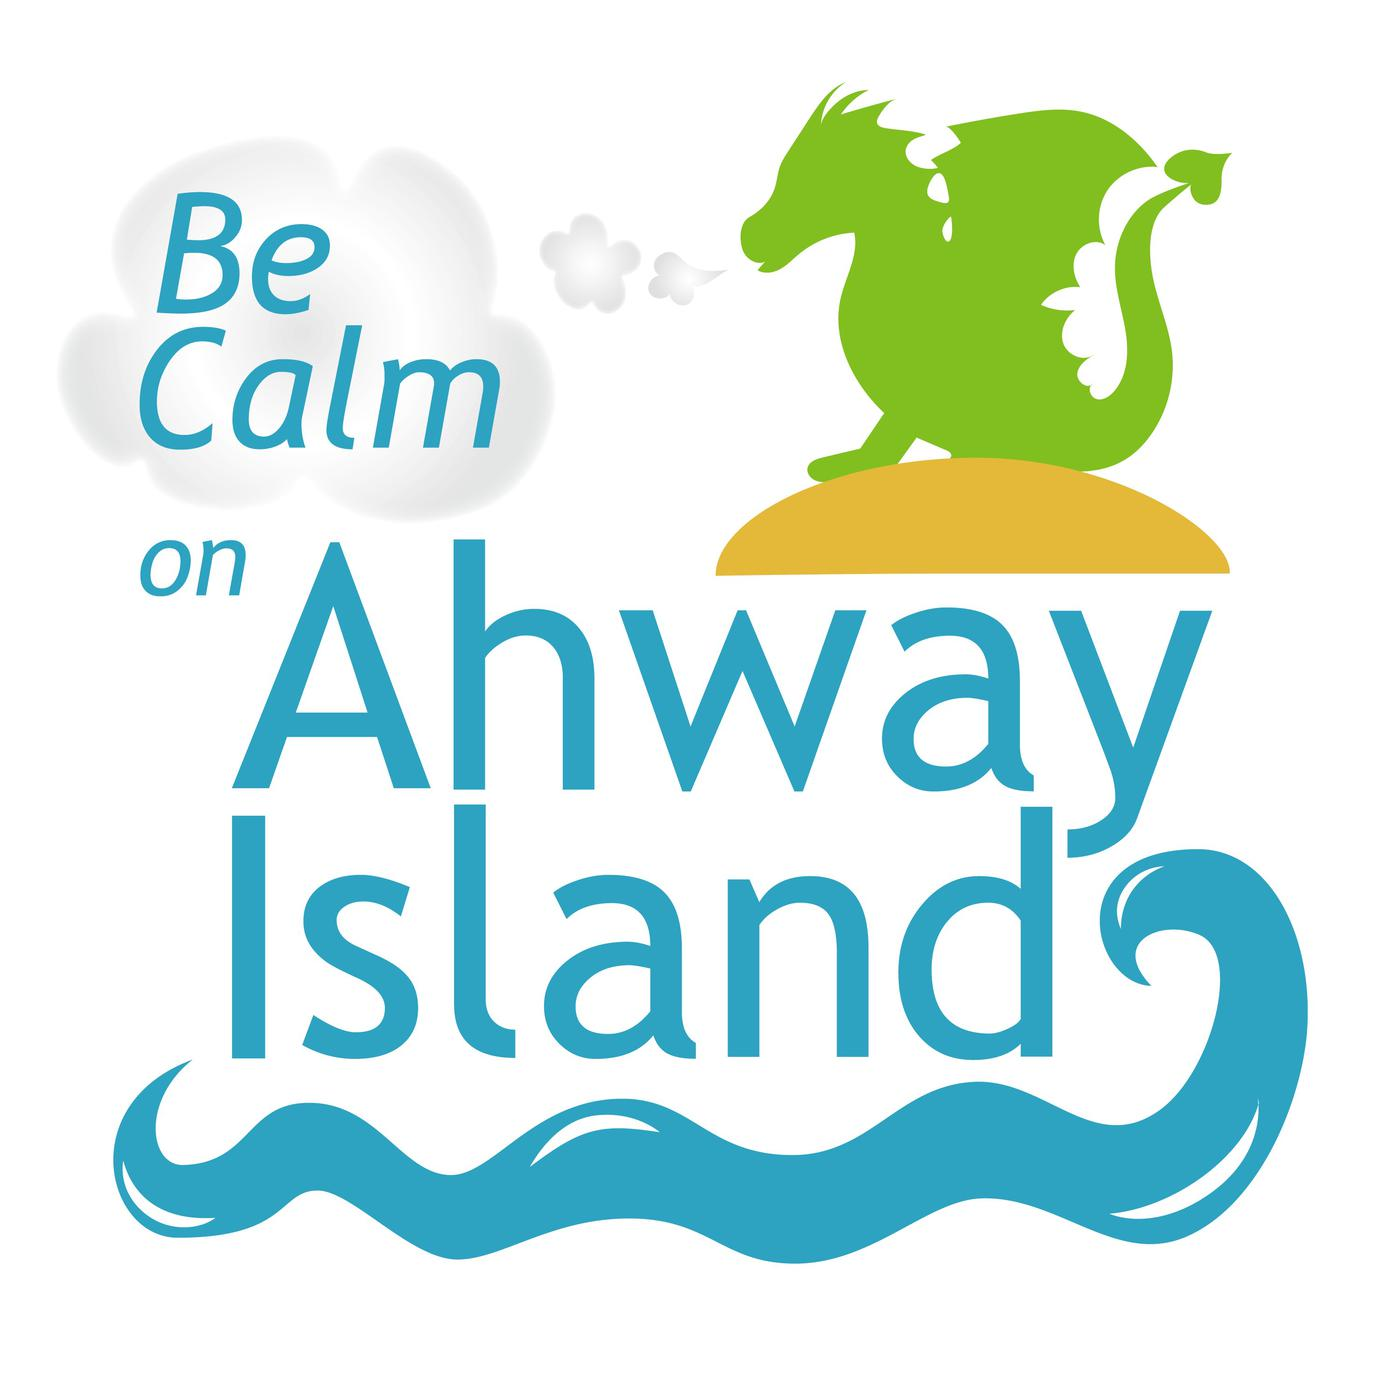 Be Calm on Ahway Island Bedtime Stories (podcast) - SheepJam